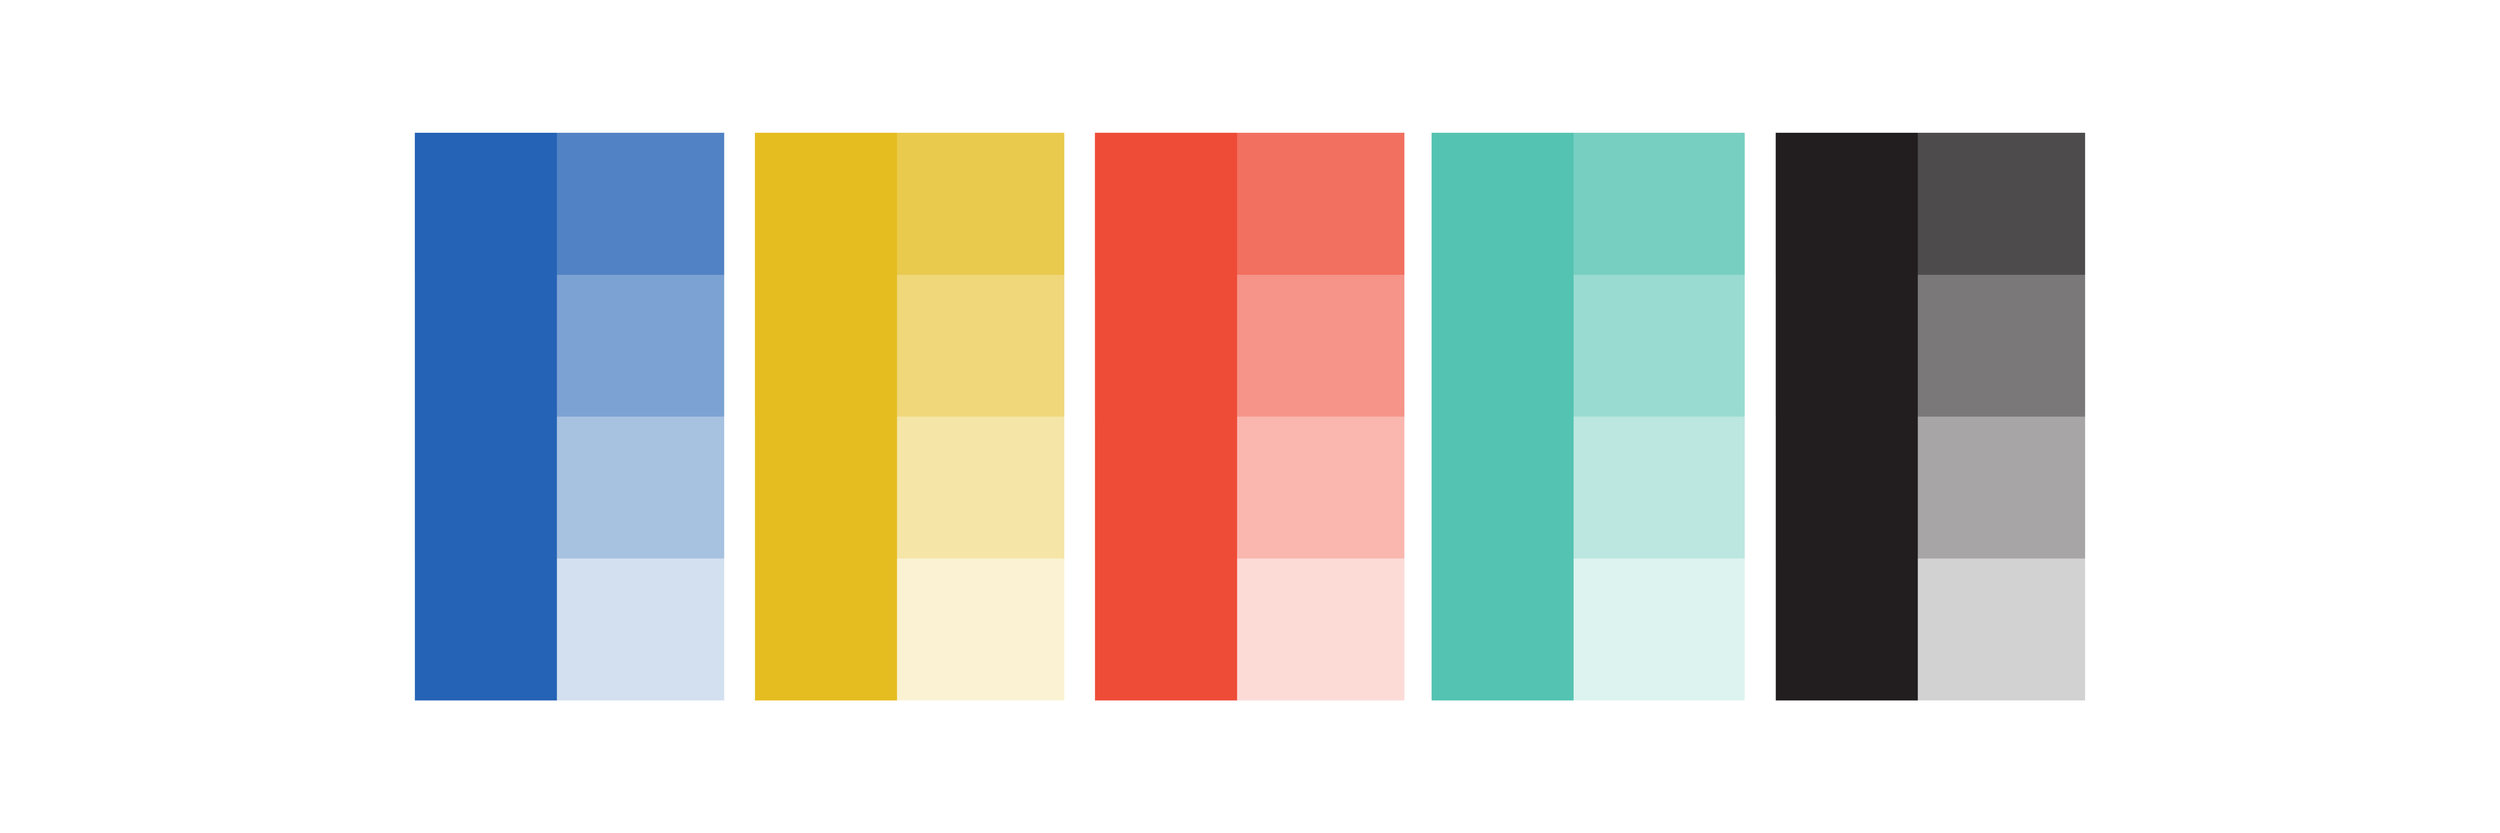 CANOPY_Ink Theater_Branding_Color Palette.jpg